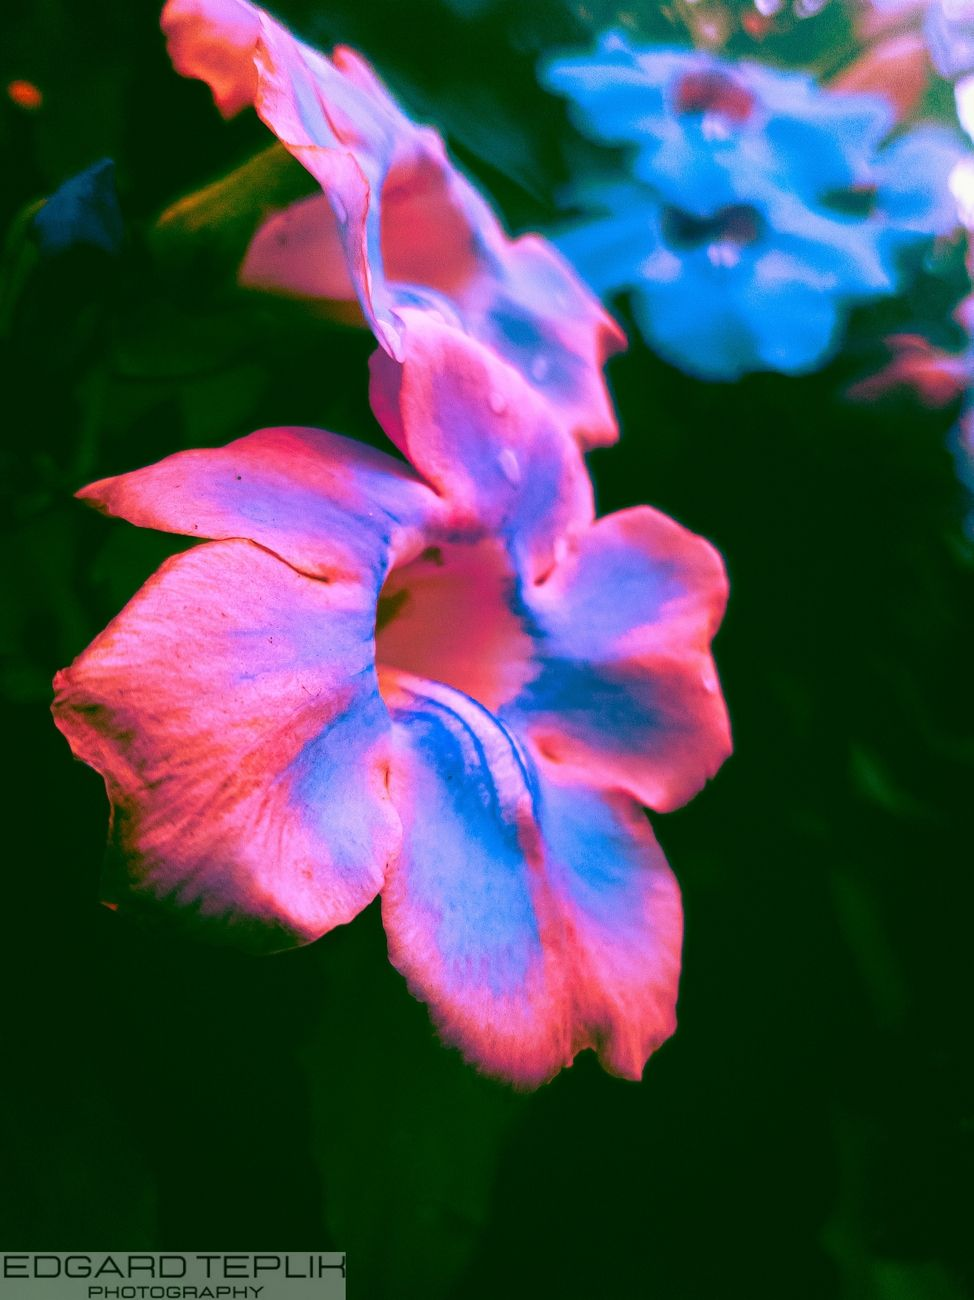 Highlighted a beautiful flower, in blue and roseadi tones, with a burst background